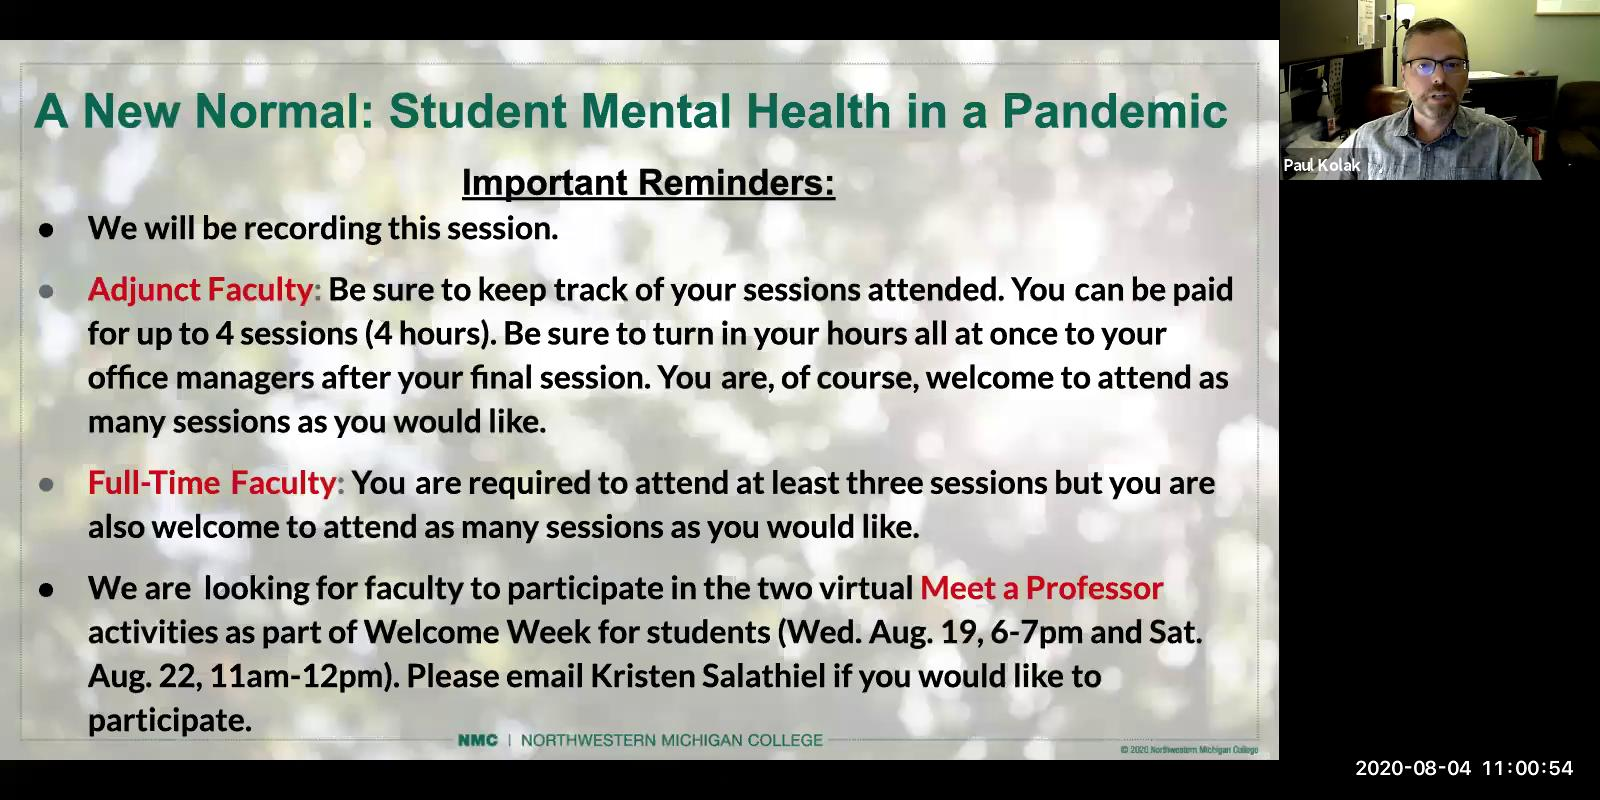 A New Normal: Students Mental Health in a Pandemic